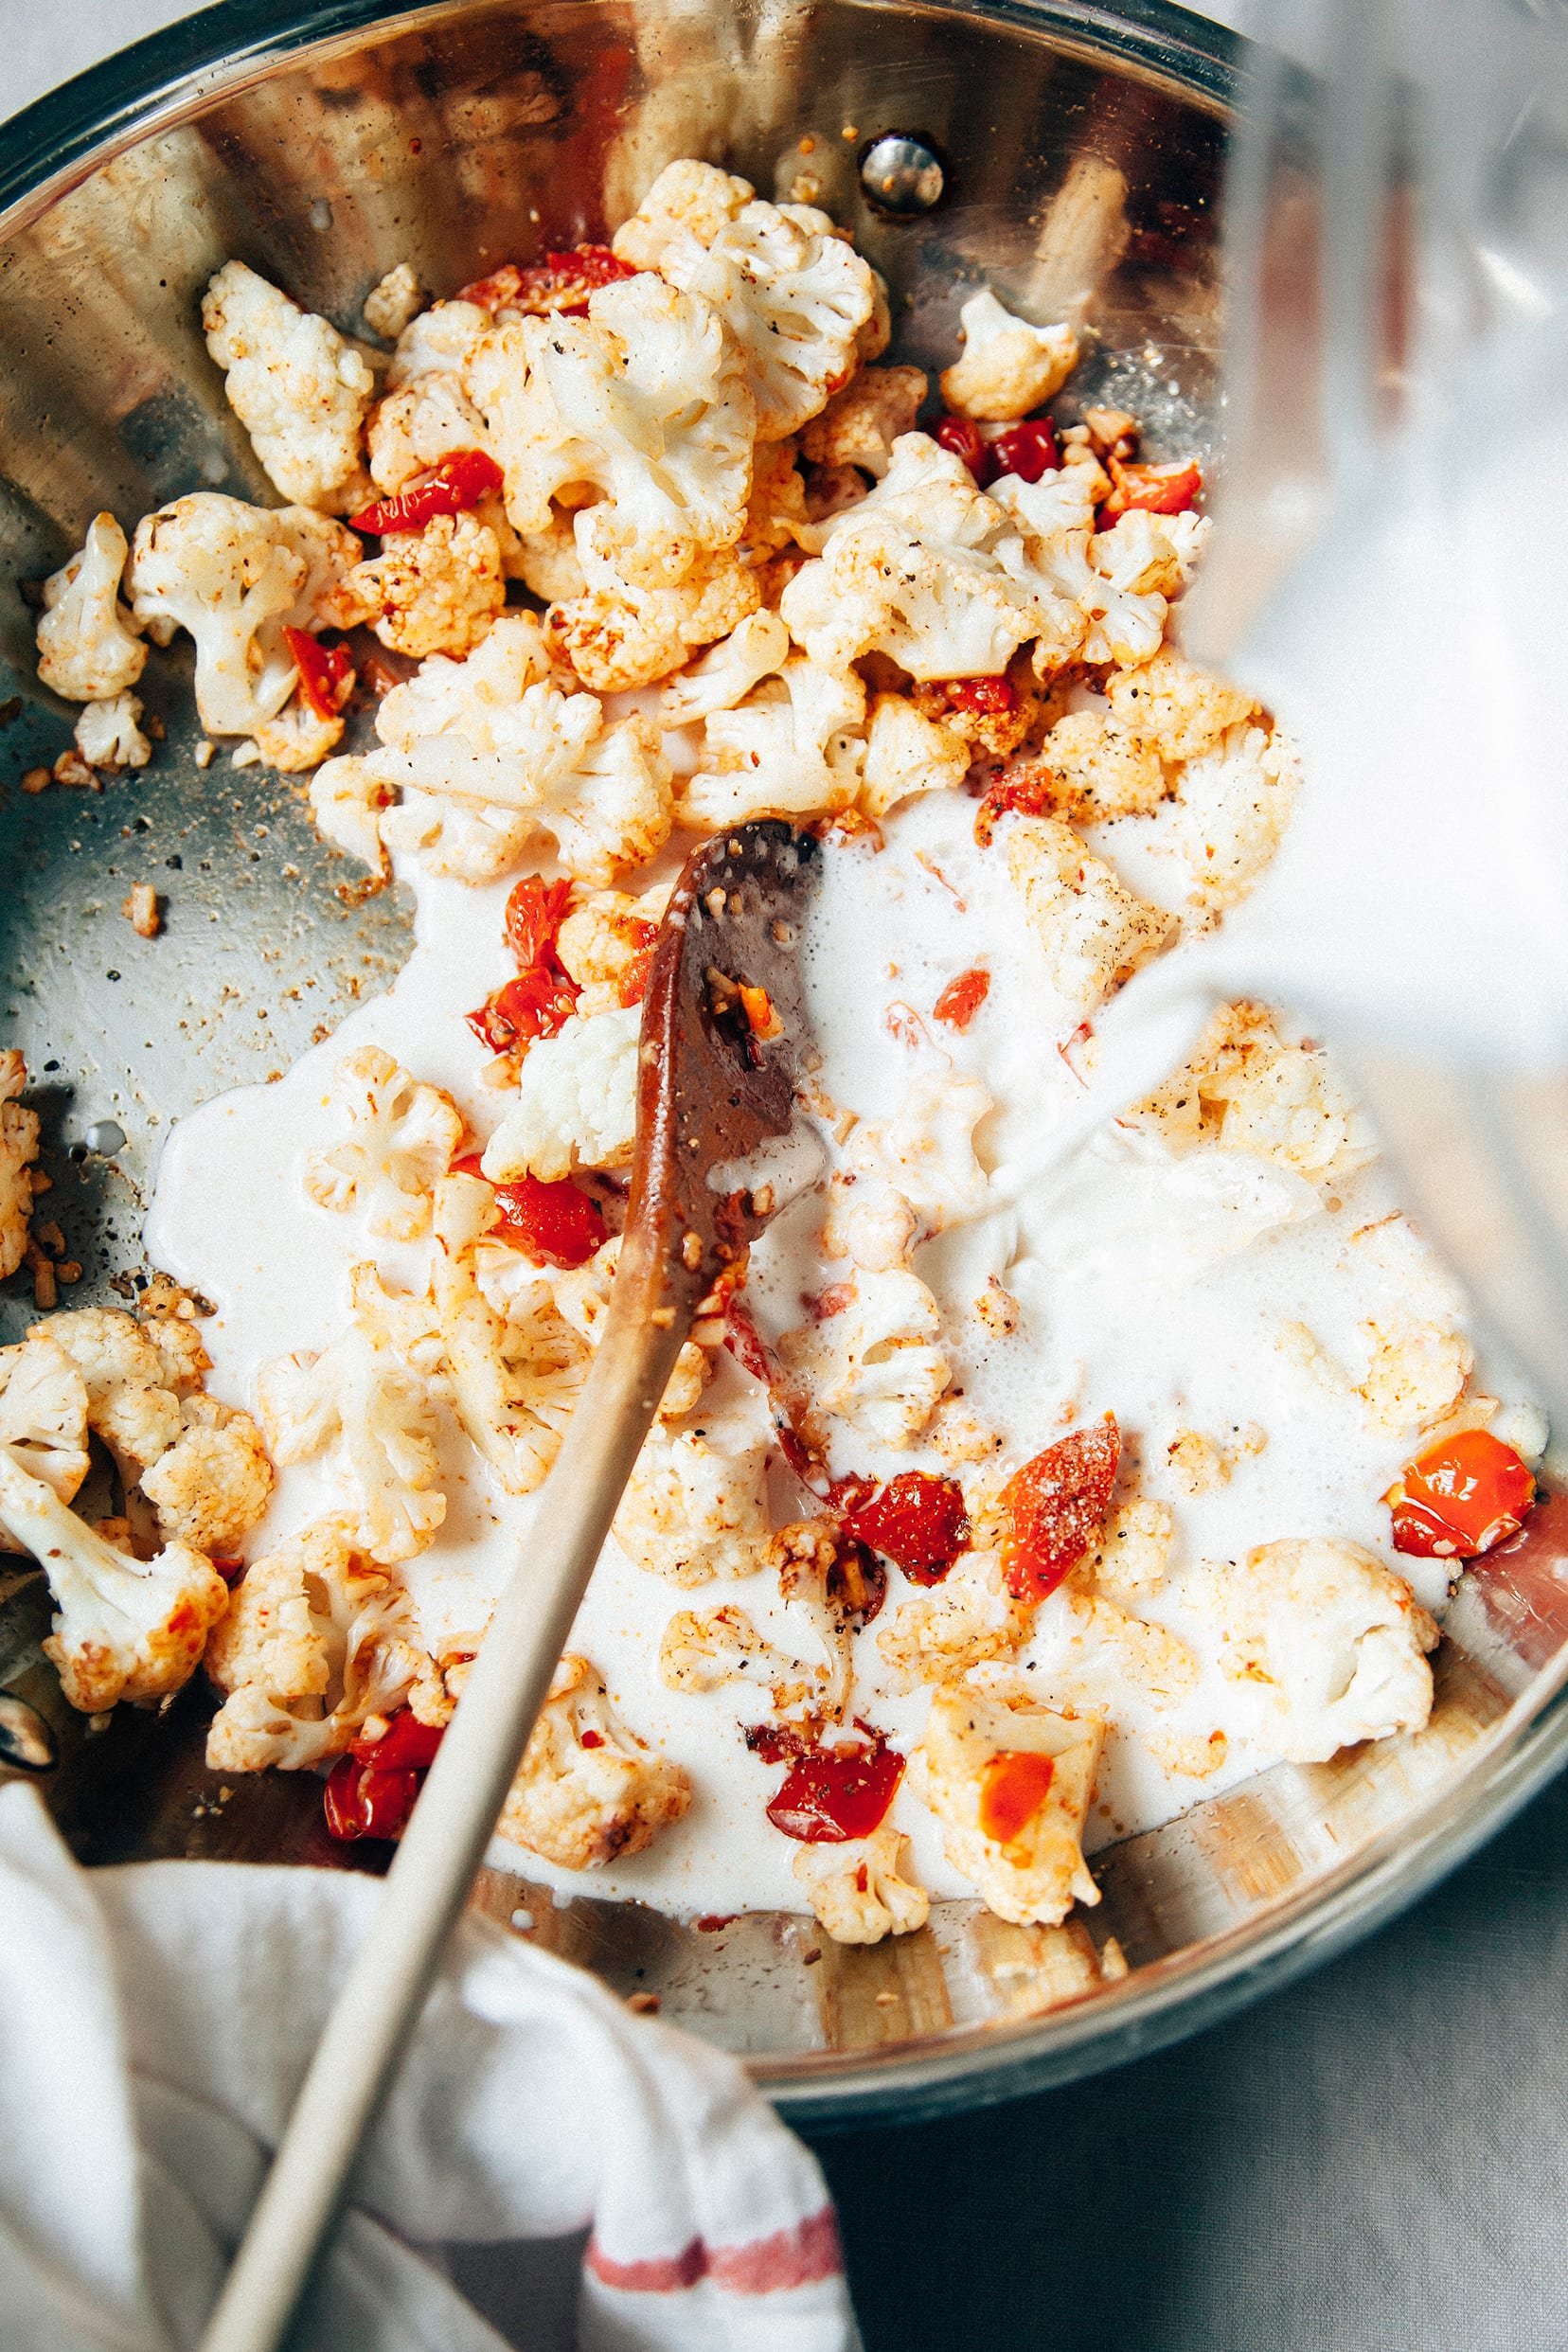 Image shows a creamy sauce being poured into a pan with tomatoes and cauliflower.